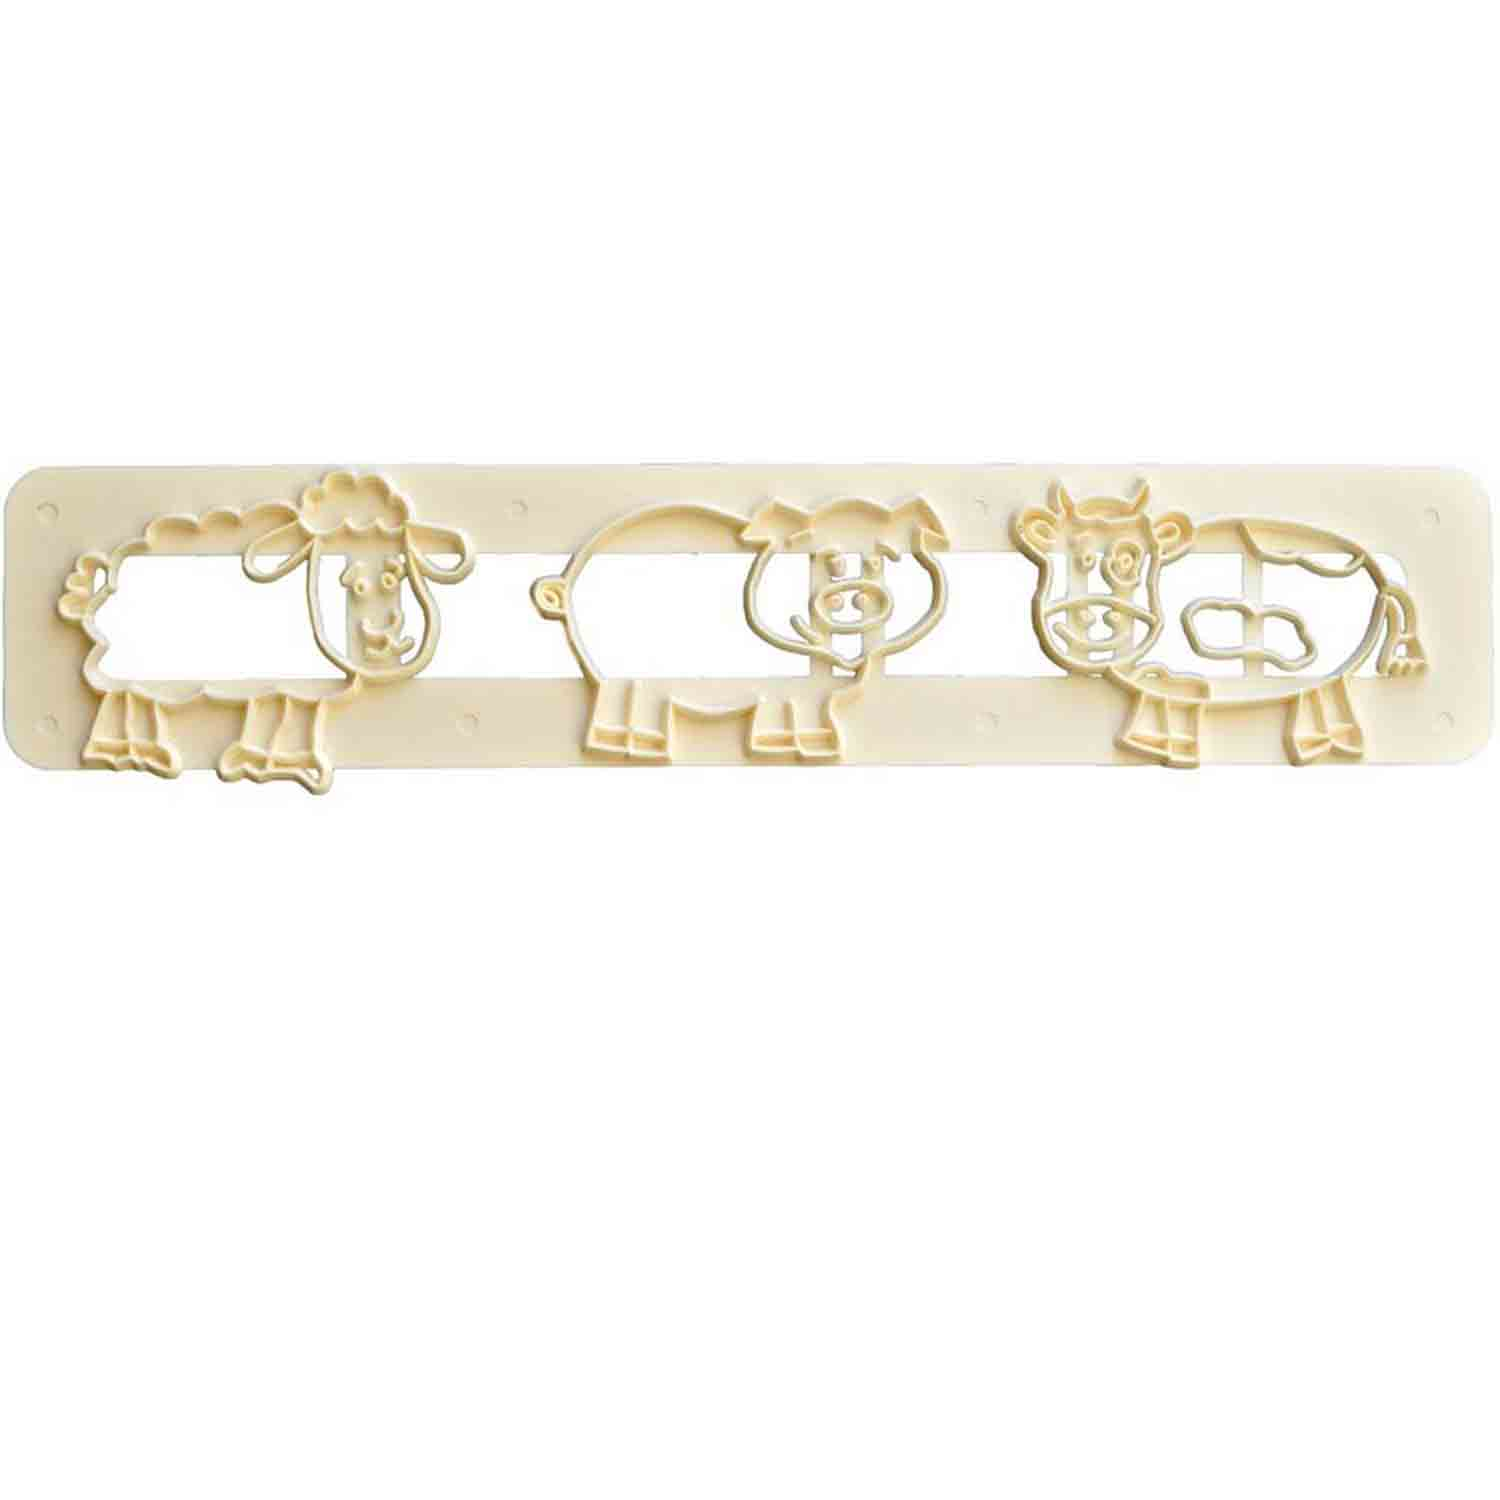 Cute Farm Animals Cutter Set